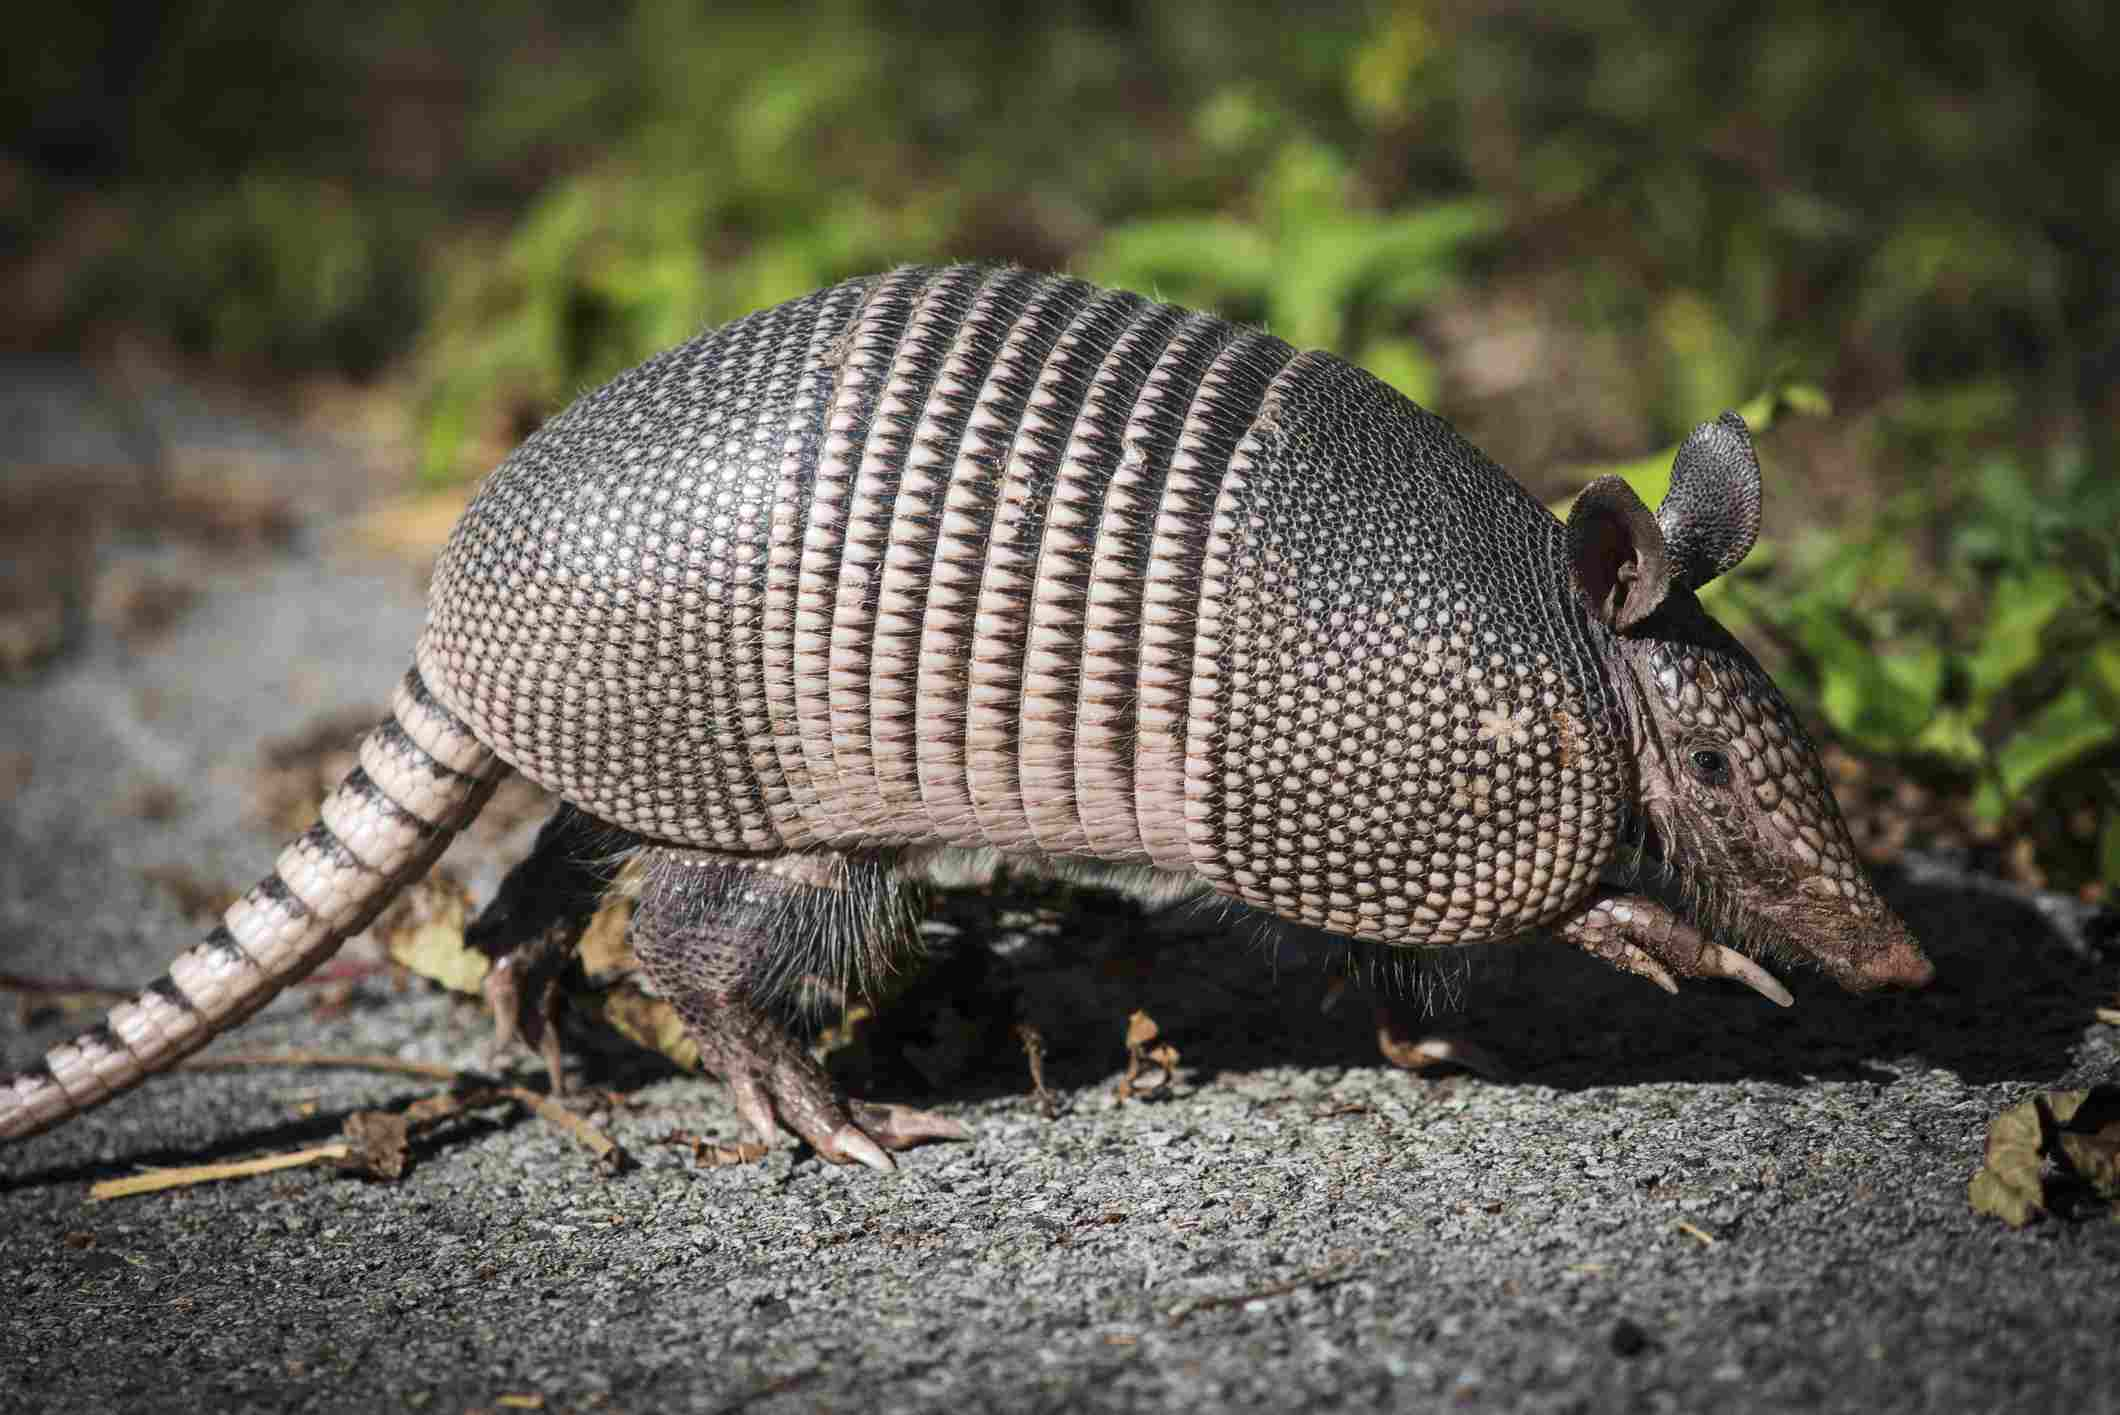 Armadillo in profile standing on a rock.